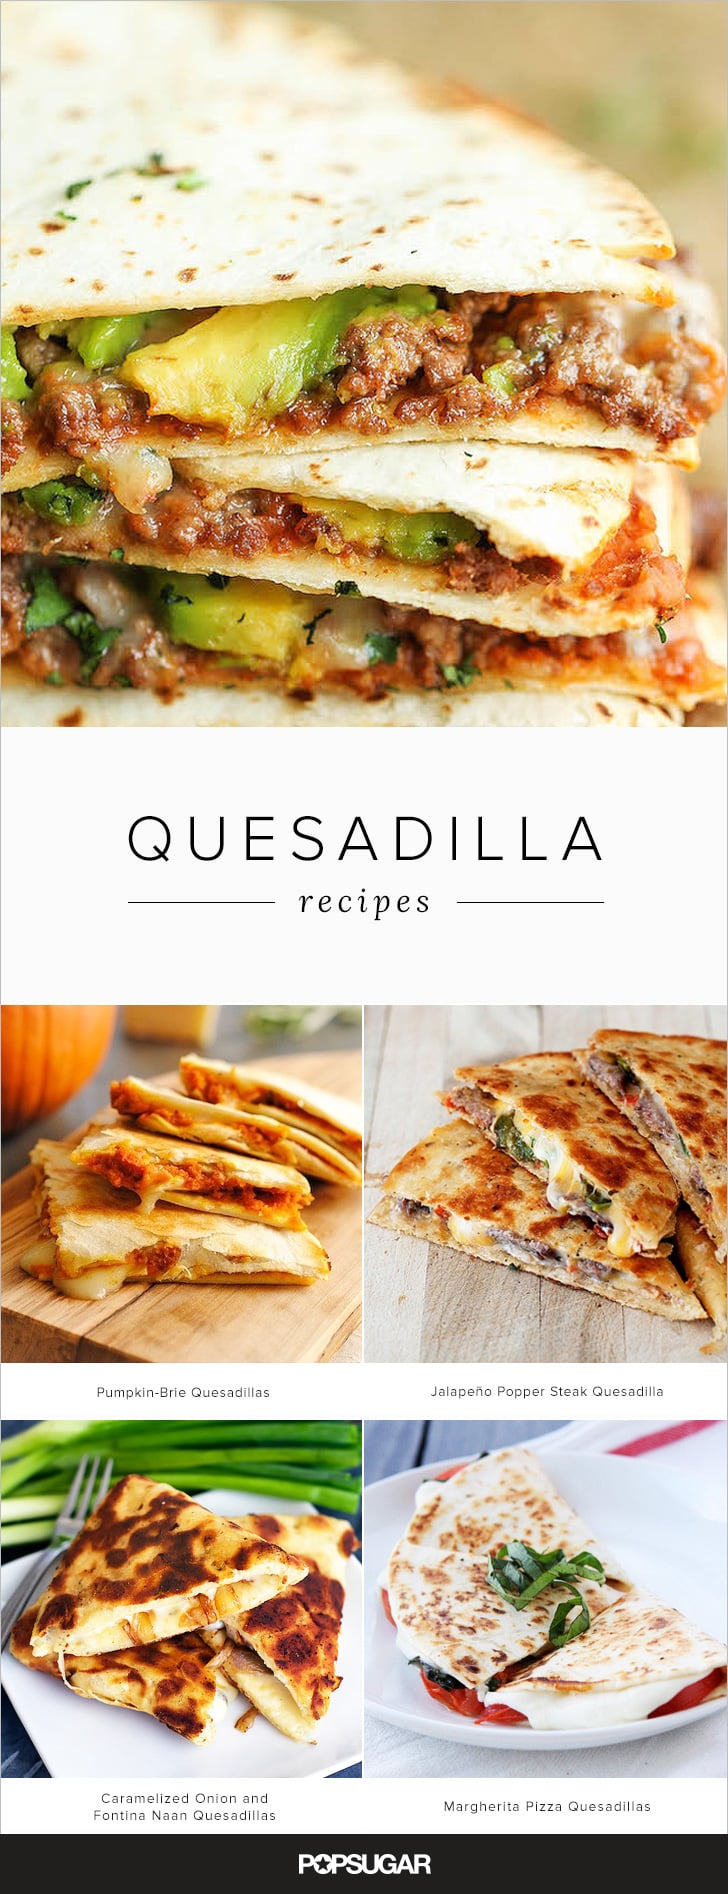 Quesadilla Recipes Like You've Never Seen Before